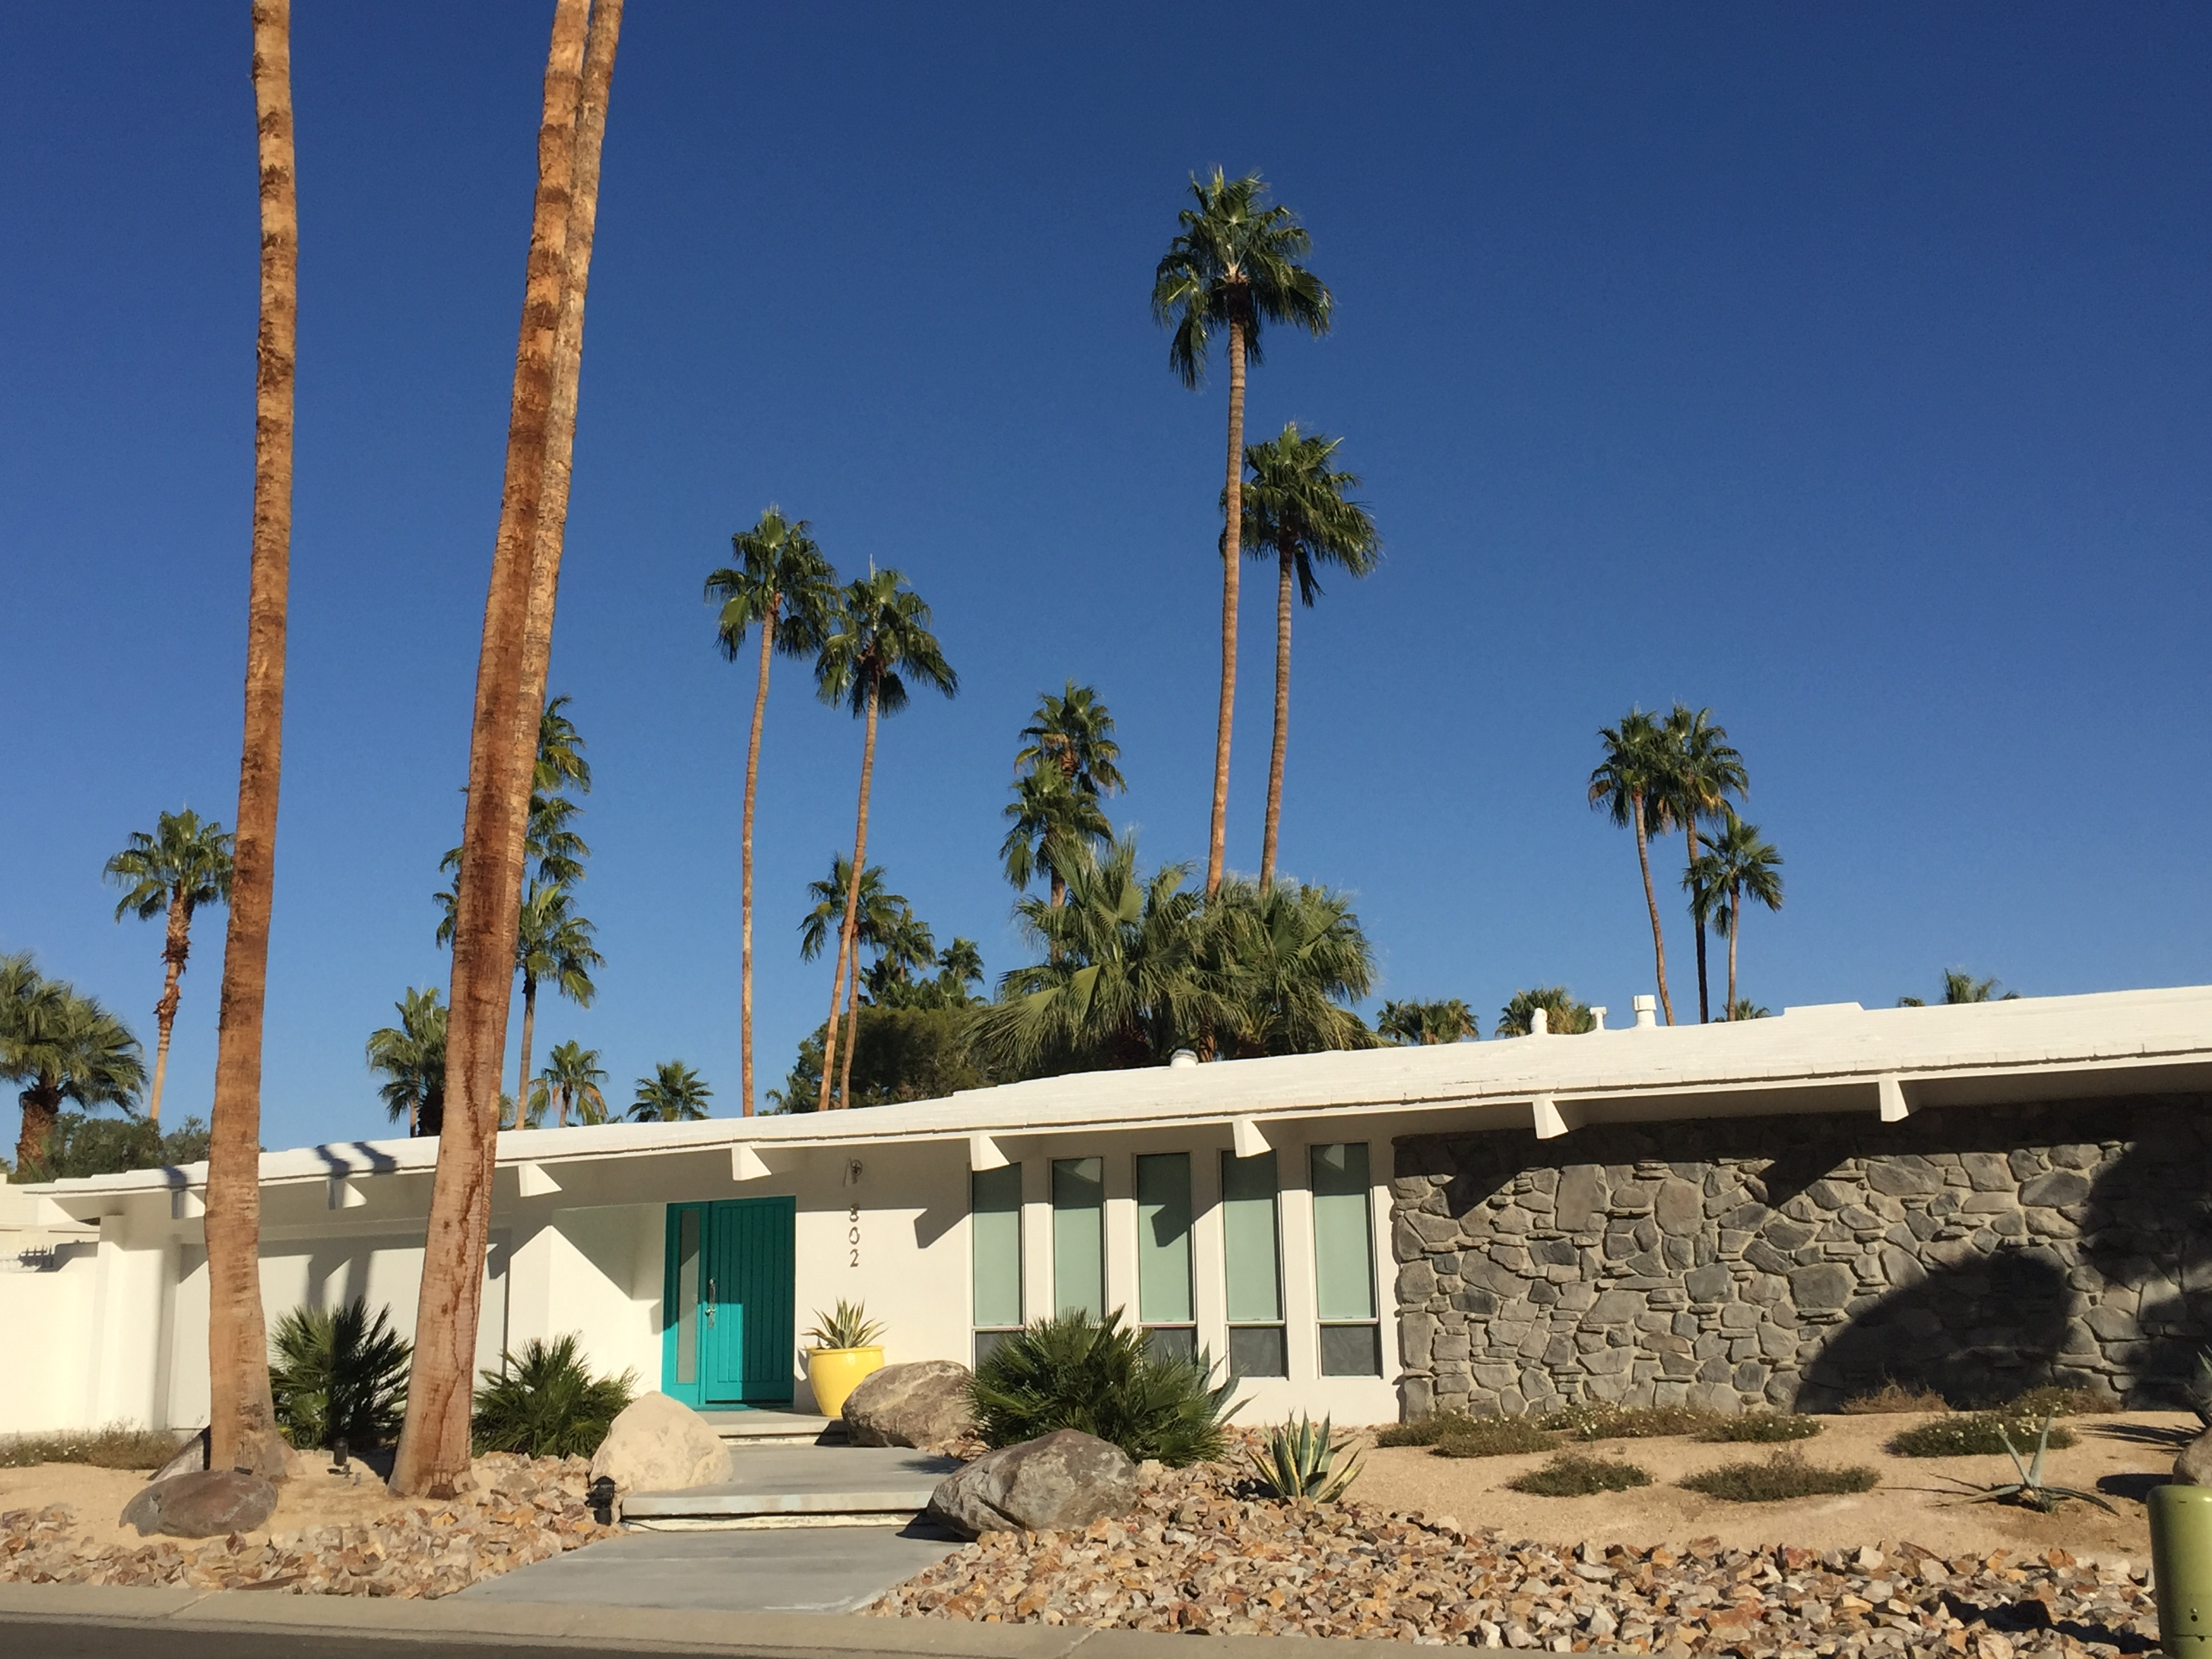 Take a Palm Springs Door Tour